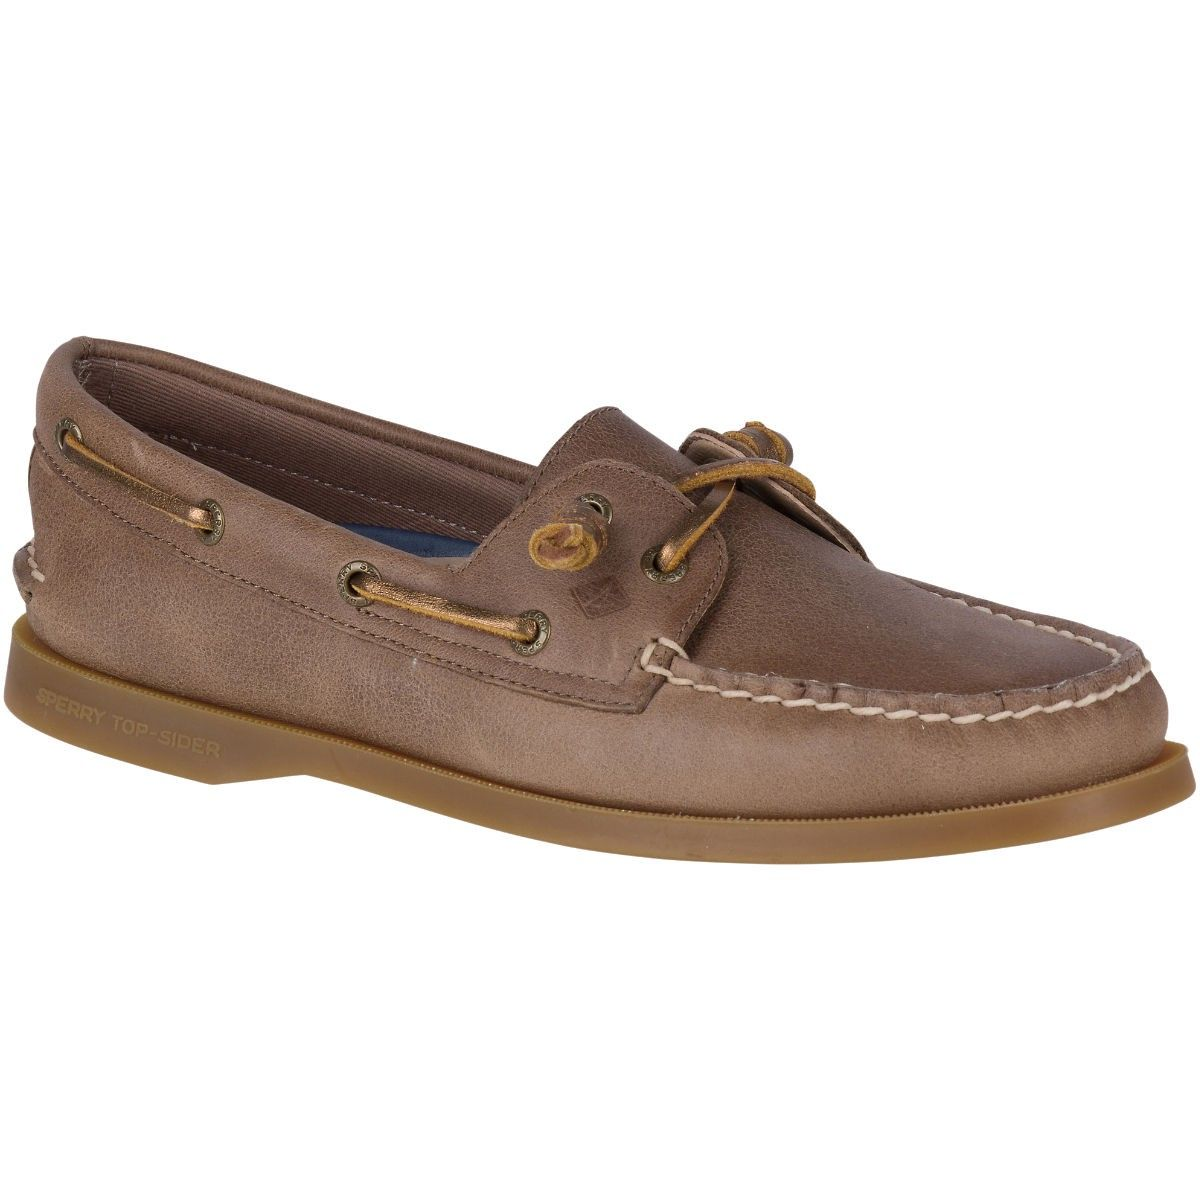 88837ba2fe2 SPERRY Women s Authentic Original Vida Boat Shoe - Brown.  sperry  shoes   all